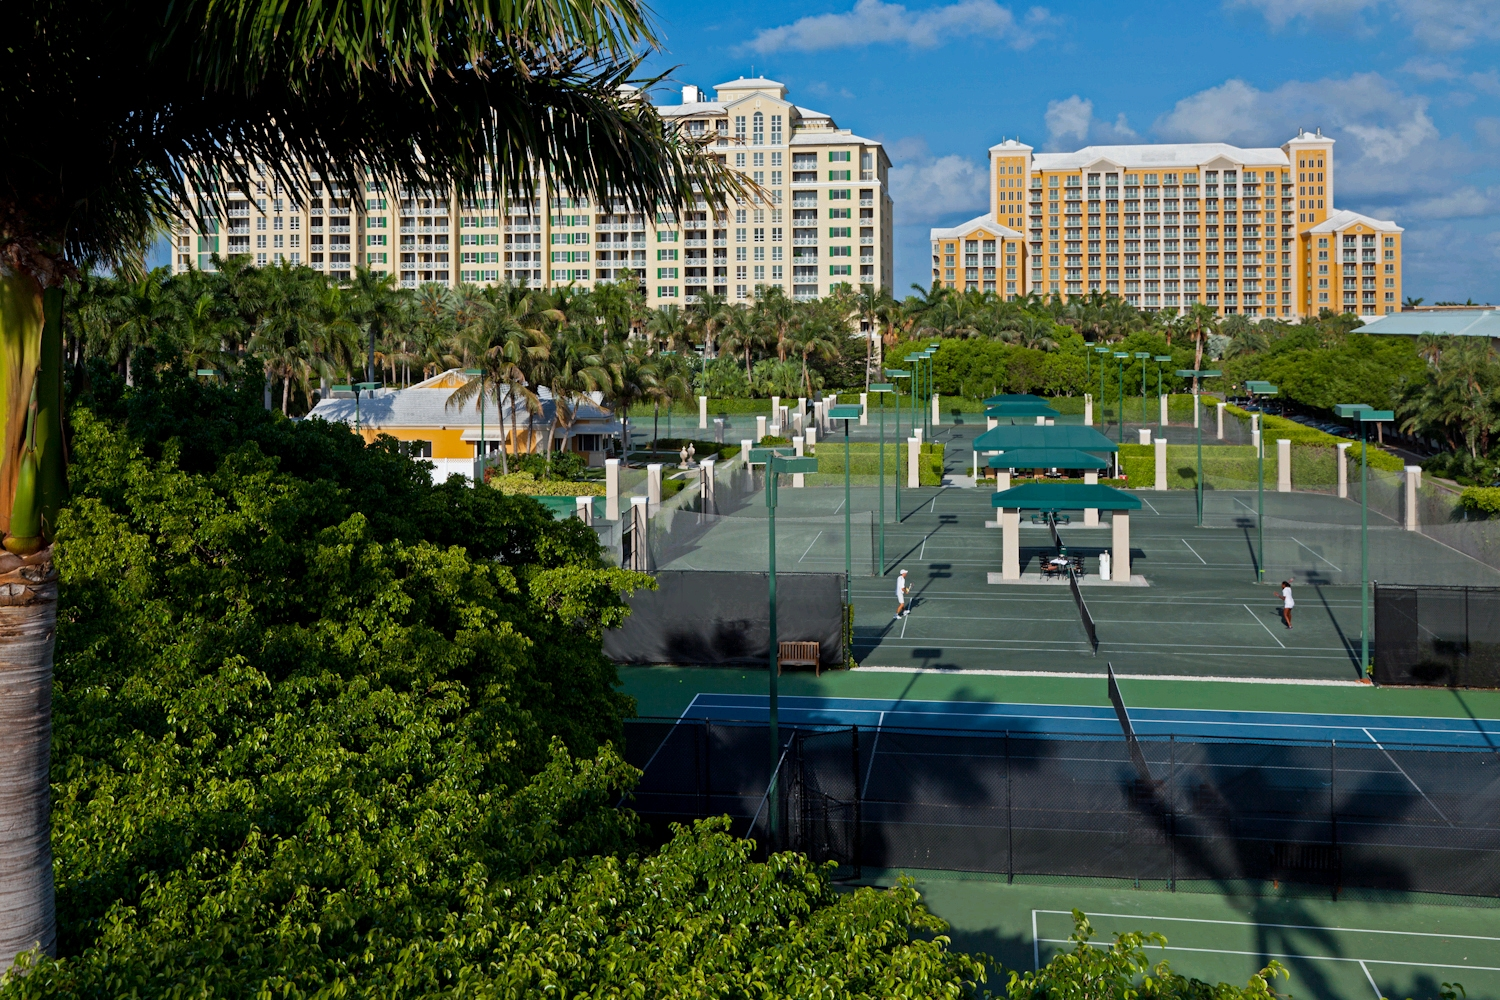 LADIES TENNIS RETREATS: The Ritz-Carlton Key Biscayne